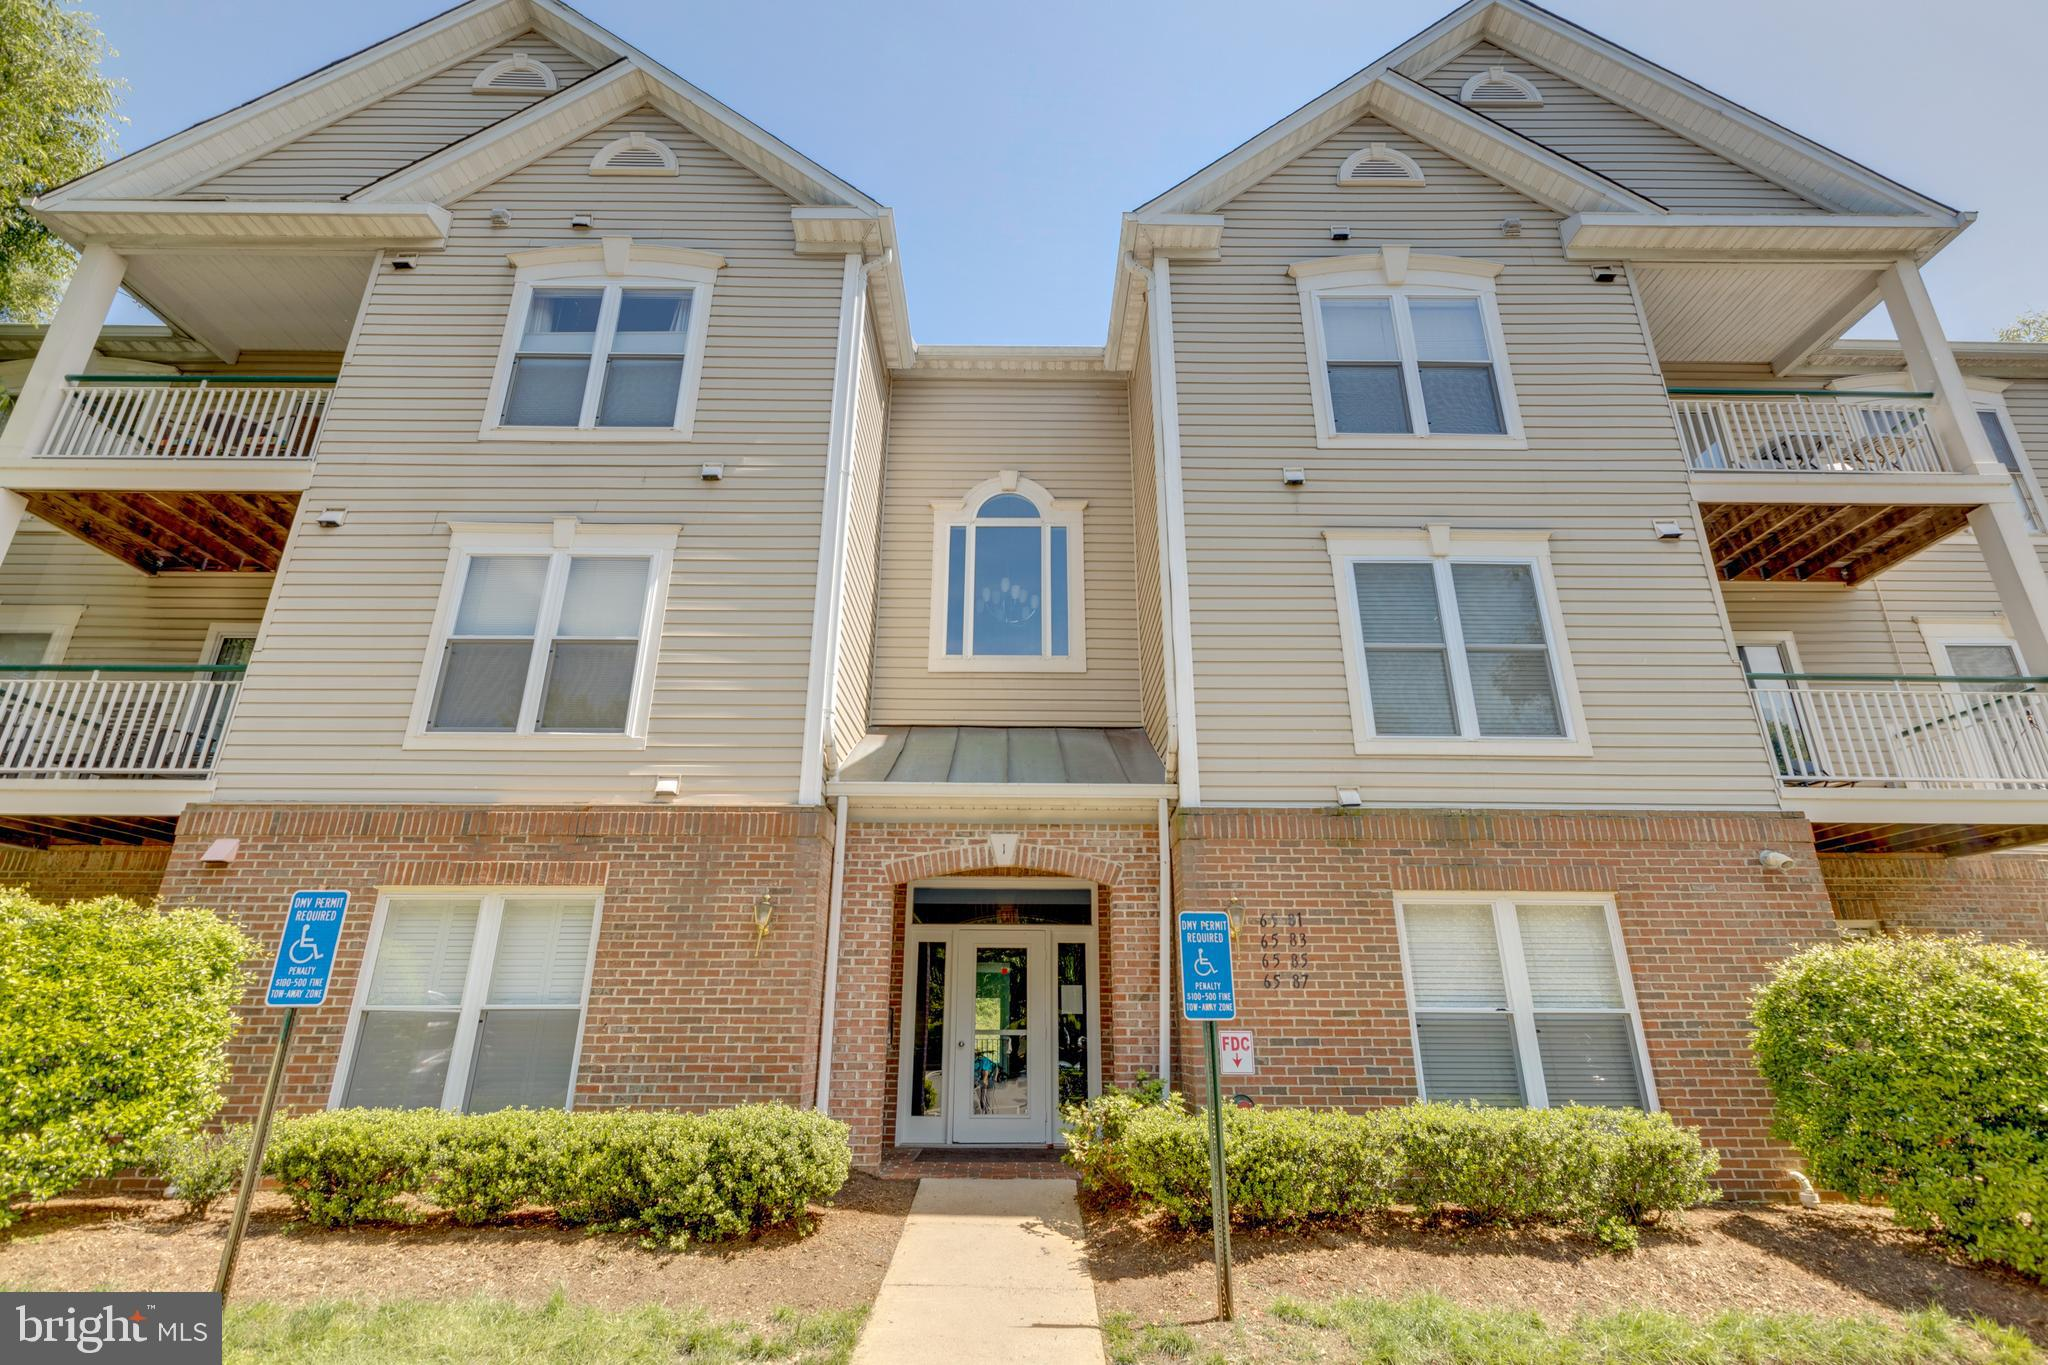 Beautiful 3 bedroom, 2 bath condominium minutes from Van Dorn Metro Station. Unit is handicap accessible with expanded doorways for wheelchair access and Roll-in shower. Condo features hardwood floors, granite countertops & gas fireplace. Fantastic Kingstowne location, minutes from shopping and restaurants. Community features Pool, Tennis courts, trail & Fitness Center. DIAL #0757 TO GAIN ACCESS